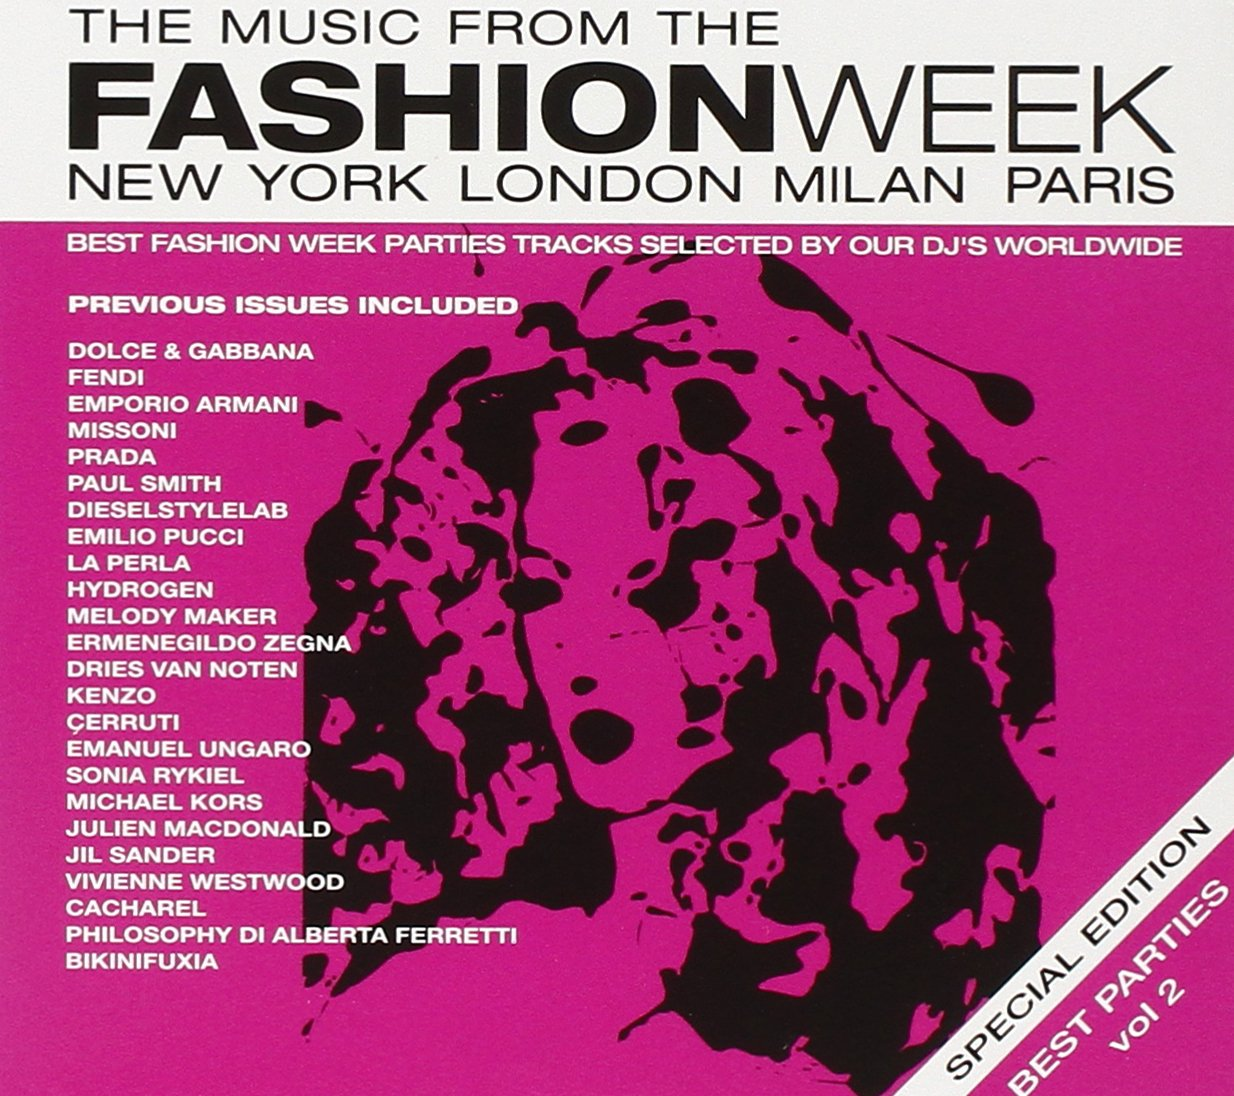 Vol. 2-Music from the Fashion Week-Best Parties by Stefano Cecchi Records